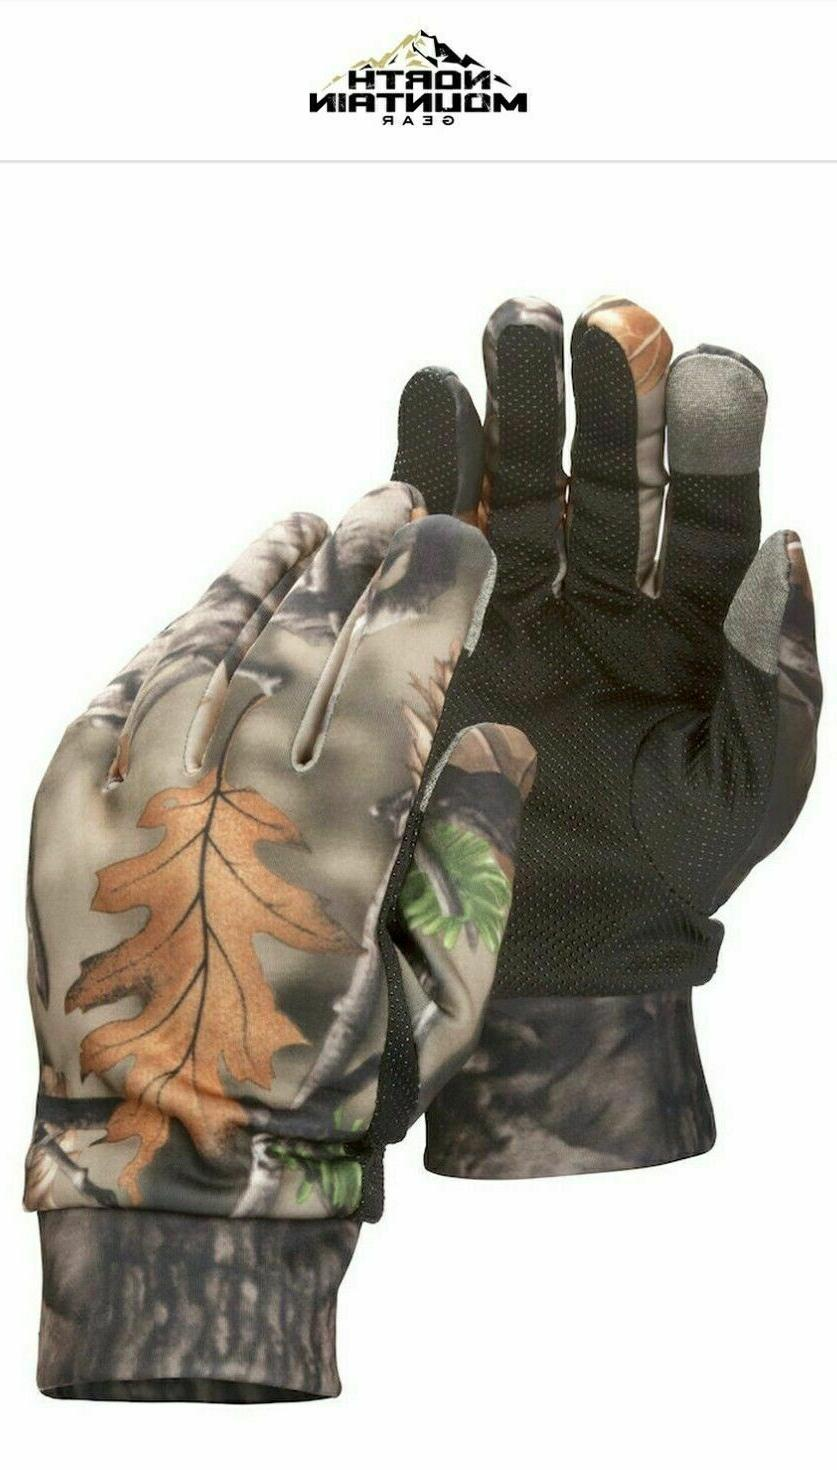 bogo smartphone compatible fall brown camo gloves